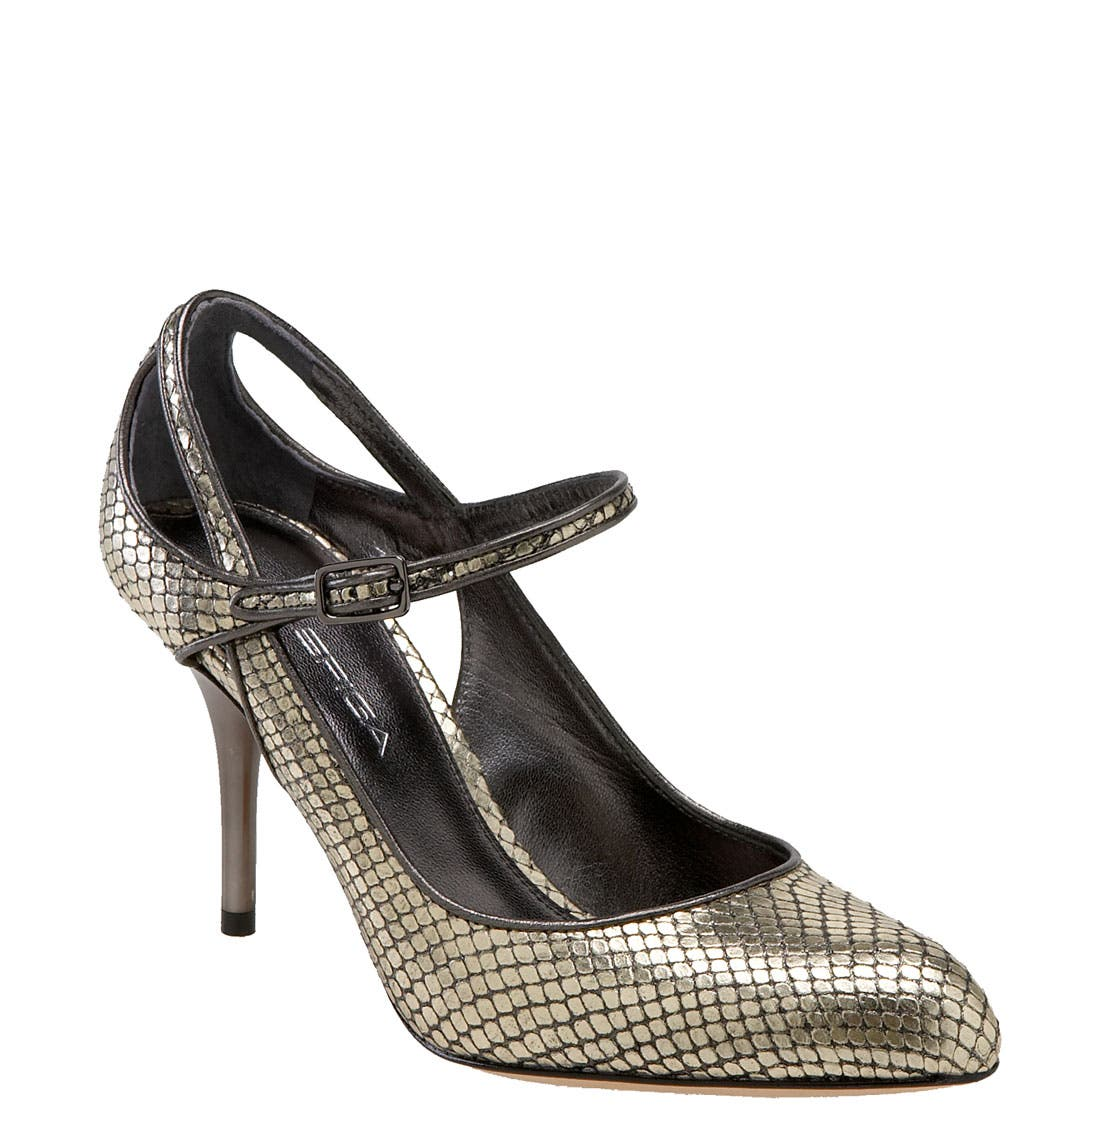 Main Image - Via Spiga 'Opal' Pump